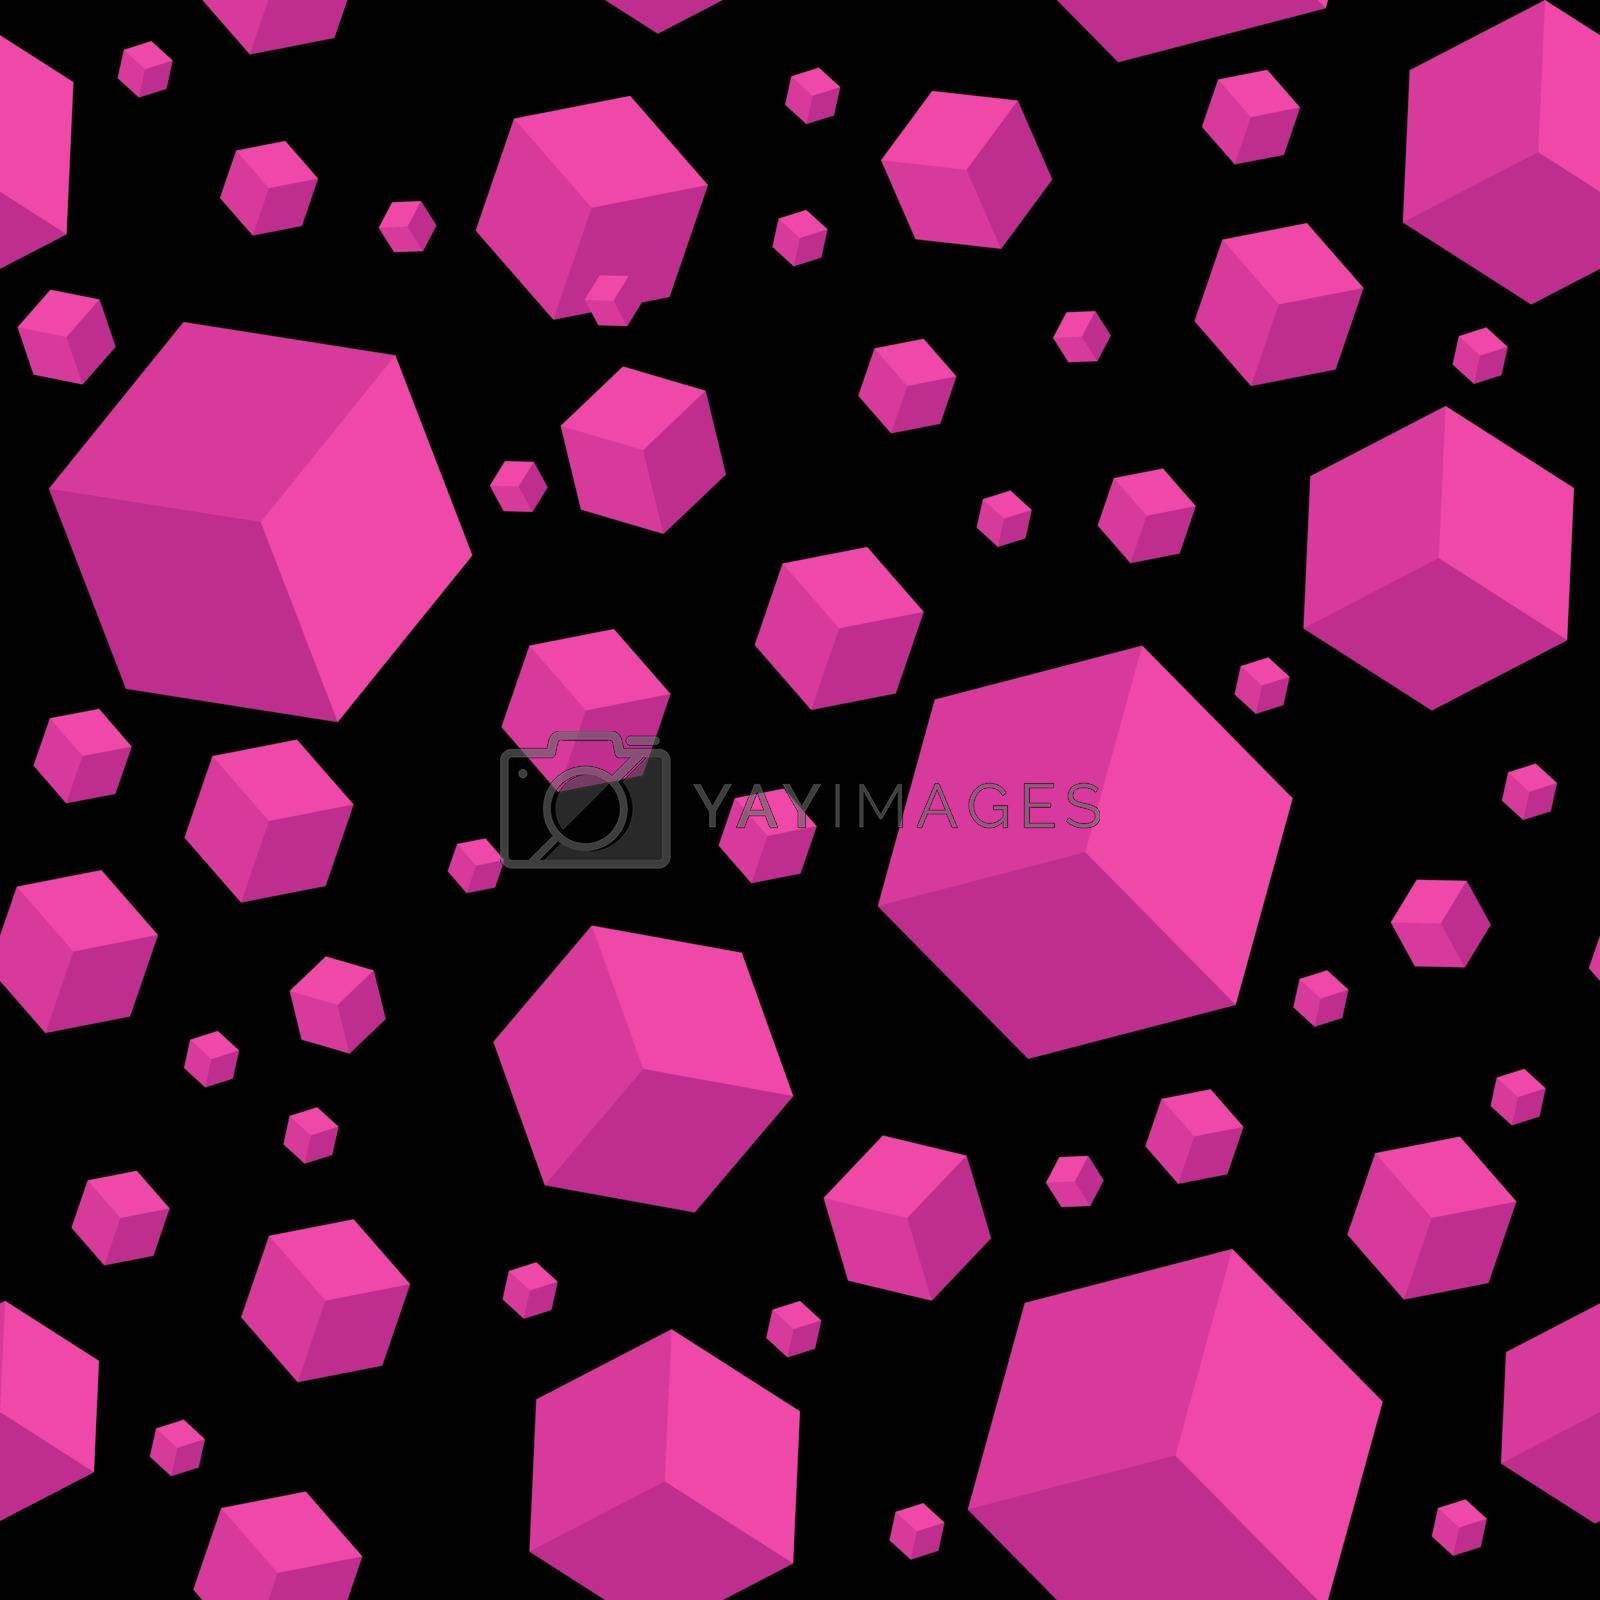 Seamless geometric abstract pattern for simple backgrounds textures and packaging. Vector illustration.